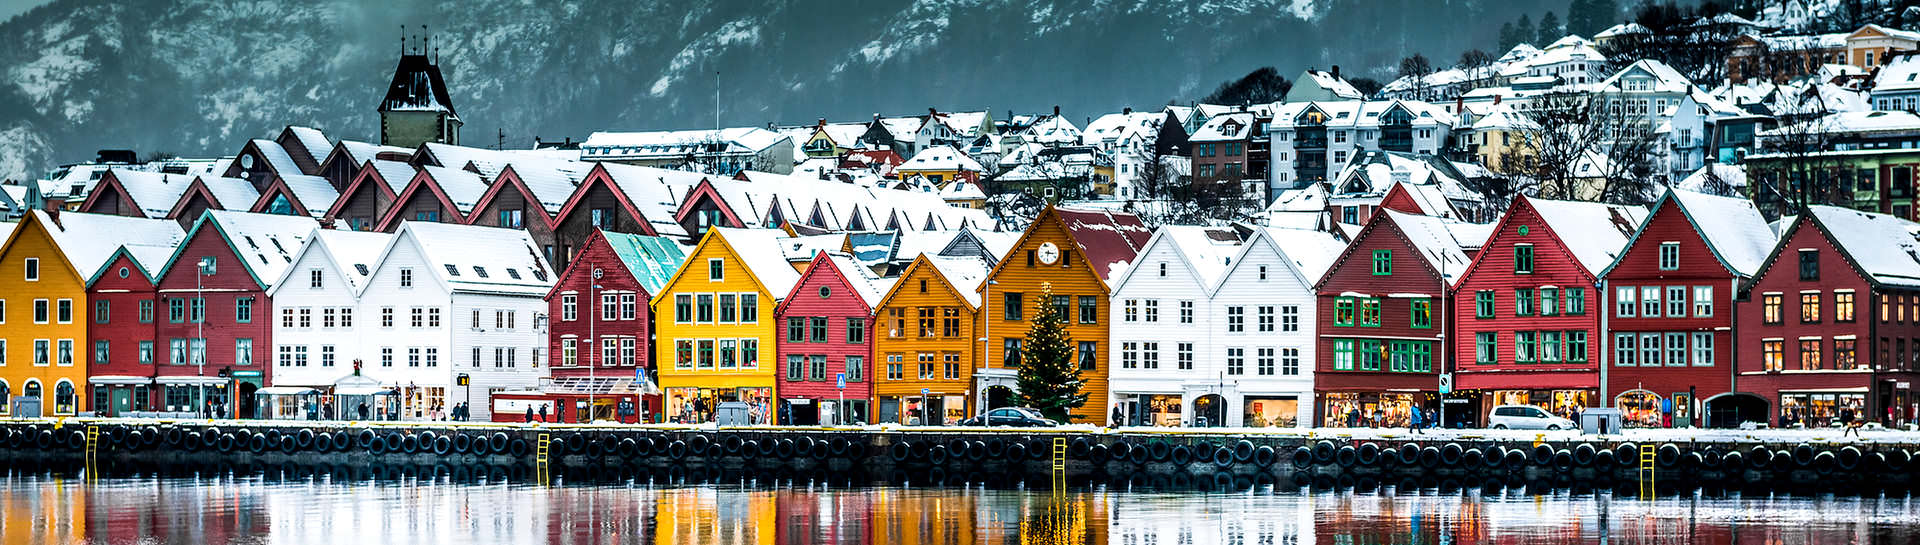 Visit Norway's second largest city of Bergen that is a gateway to the magnificent land of fjords